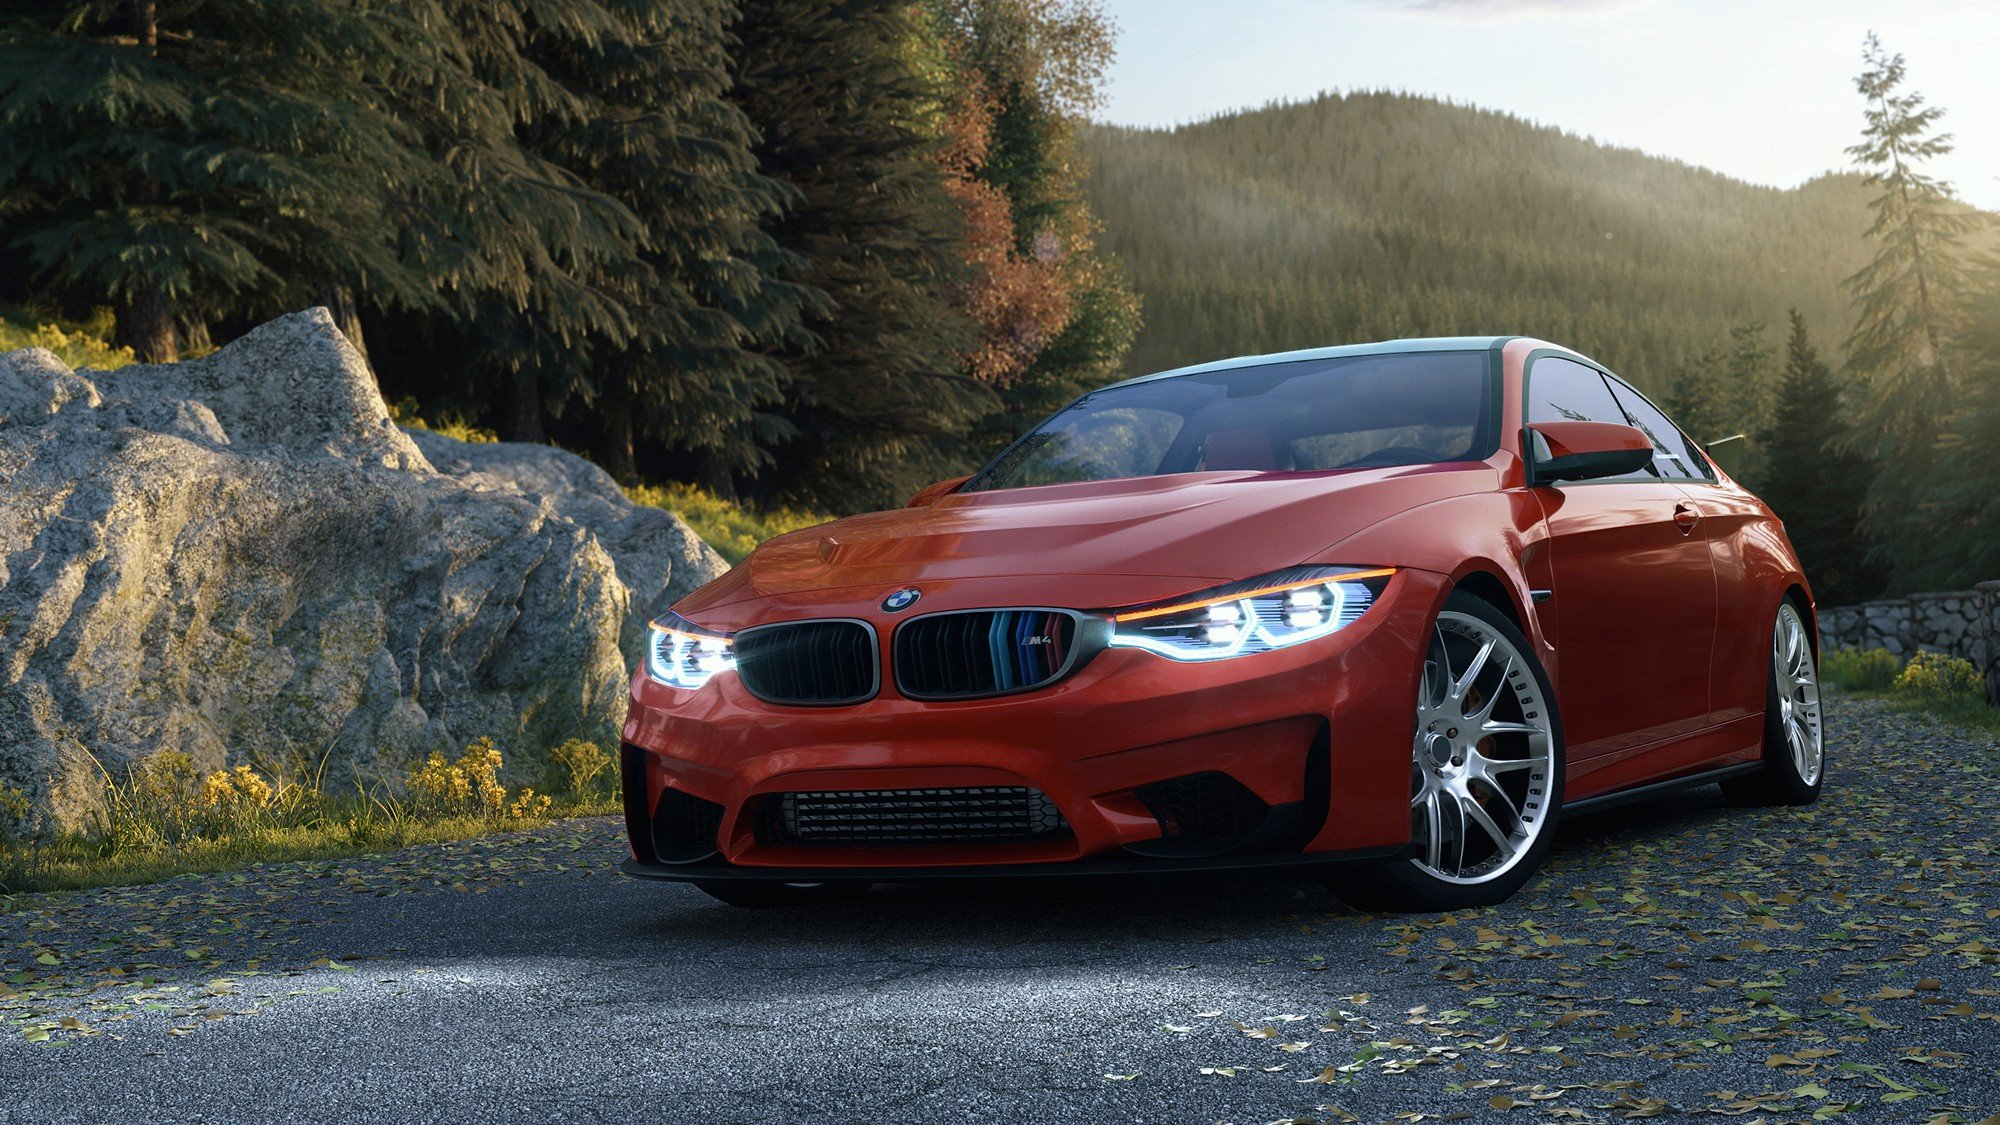 BMW M4 Coupe, Render, Corona render, Car HD Wallpapers ...